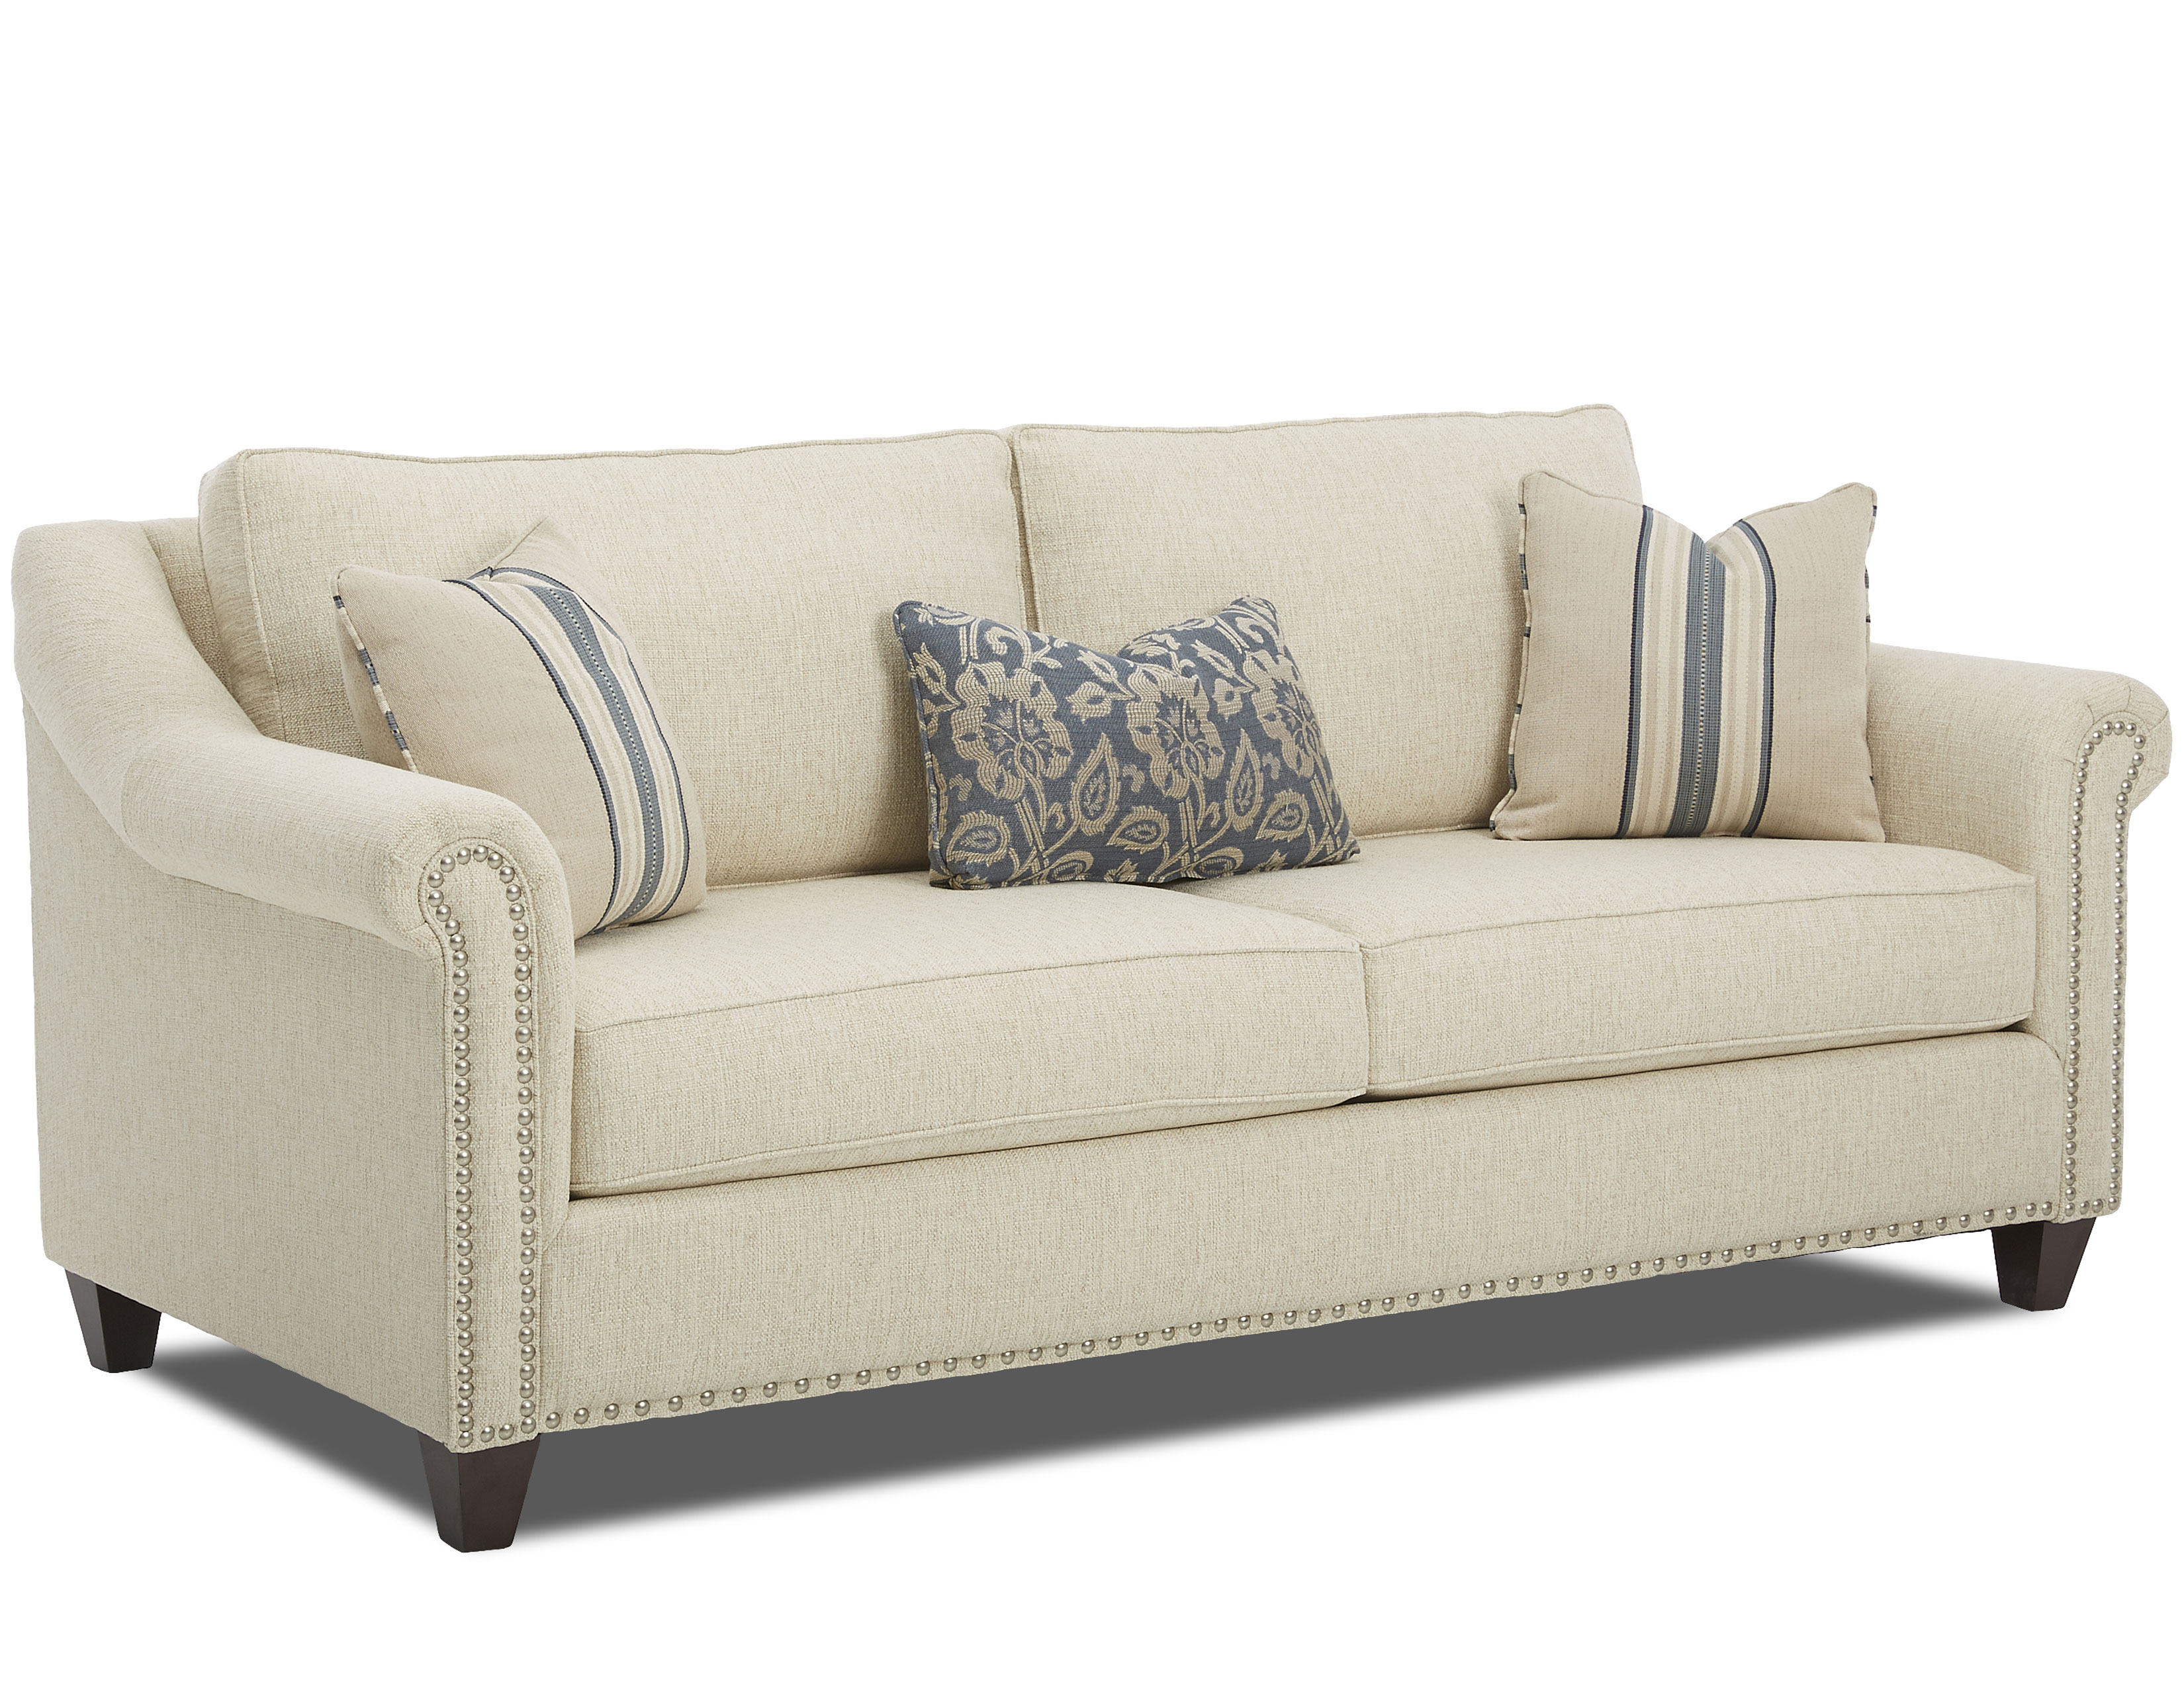 Brilliant Langley K68310 Nail Head Sofa Hundreds Of Sofas And Ibusinesslaw Wood Chair Design Ideas Ibusinesslaworg